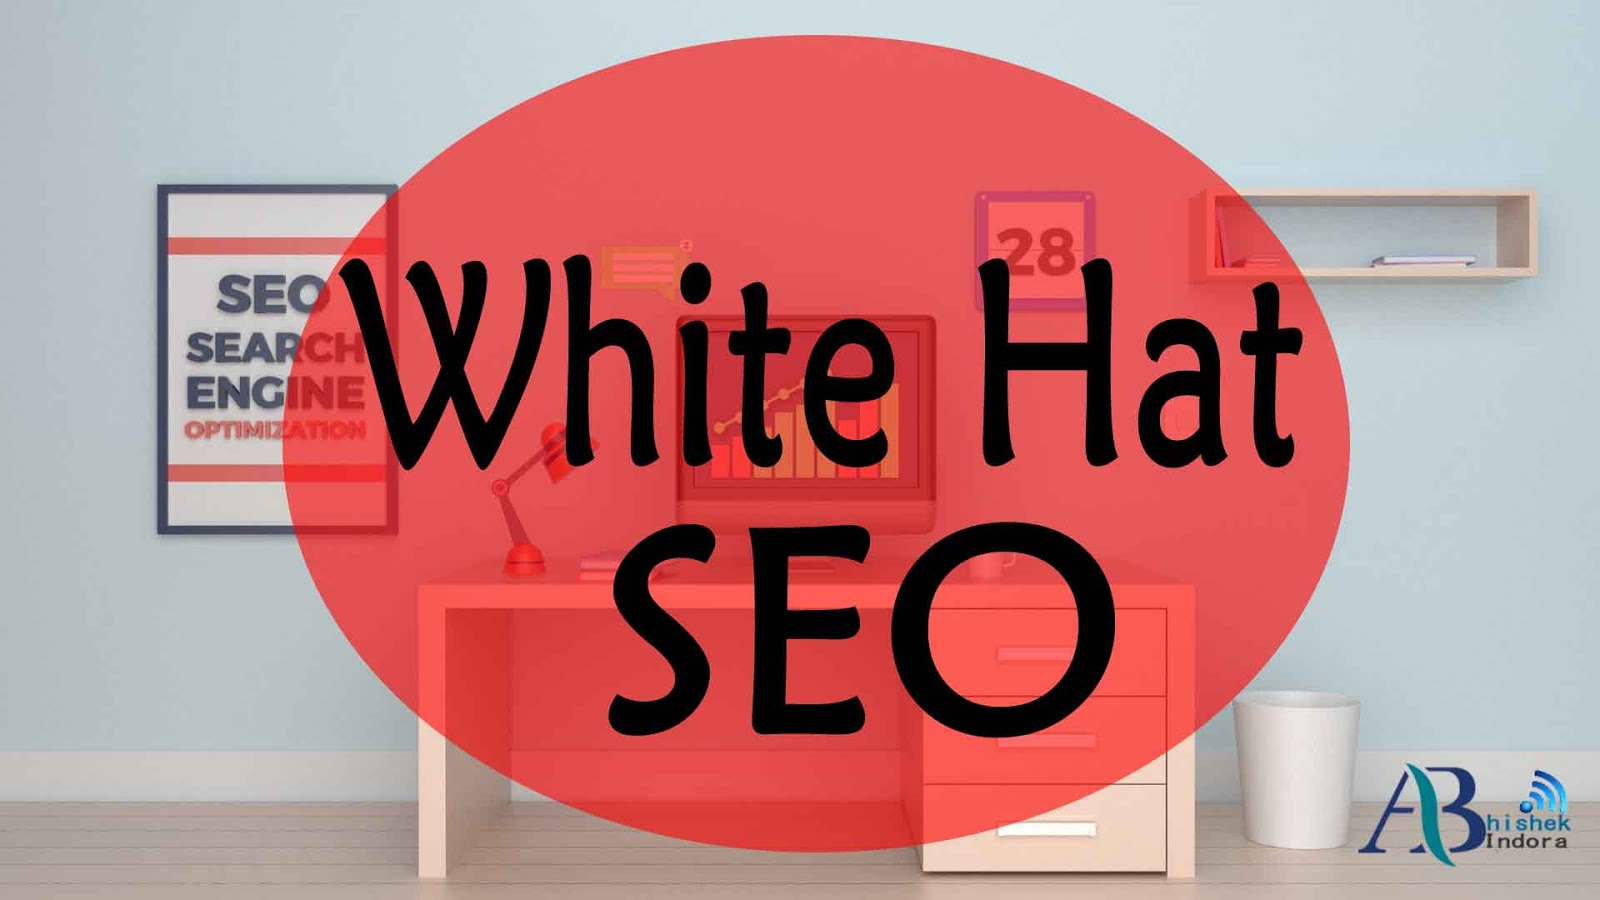 grey hat seo techniques,what is black hat seo,difference between white hat seo and black hat seo,white hat black hat seo,what's the difference between white hat and black hat seo,what is white hat seo